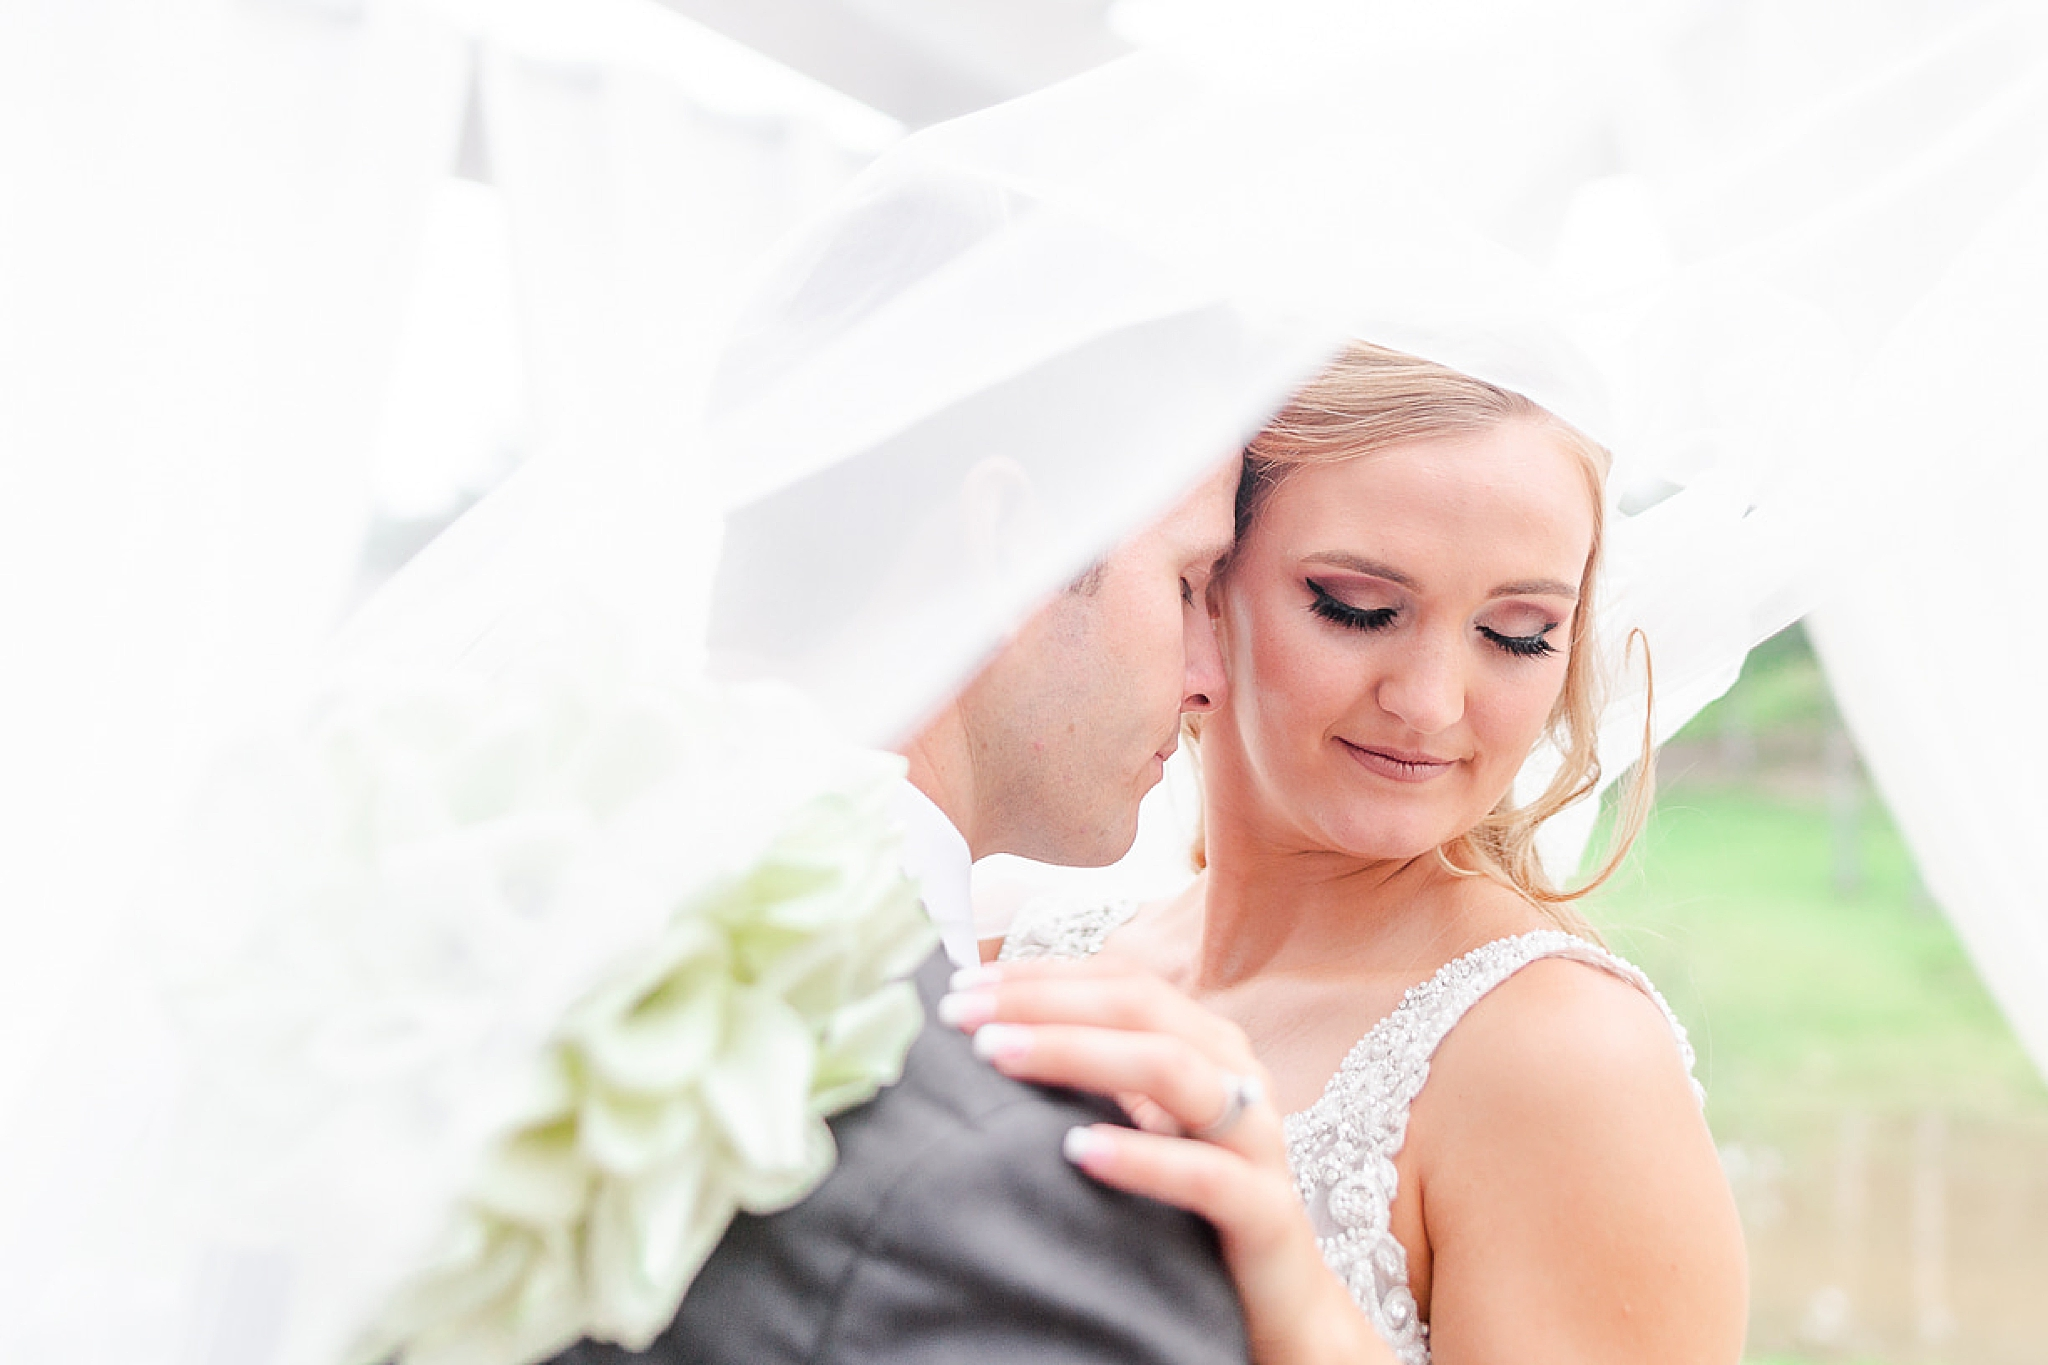 groom nuzzles bride with veil floating over them